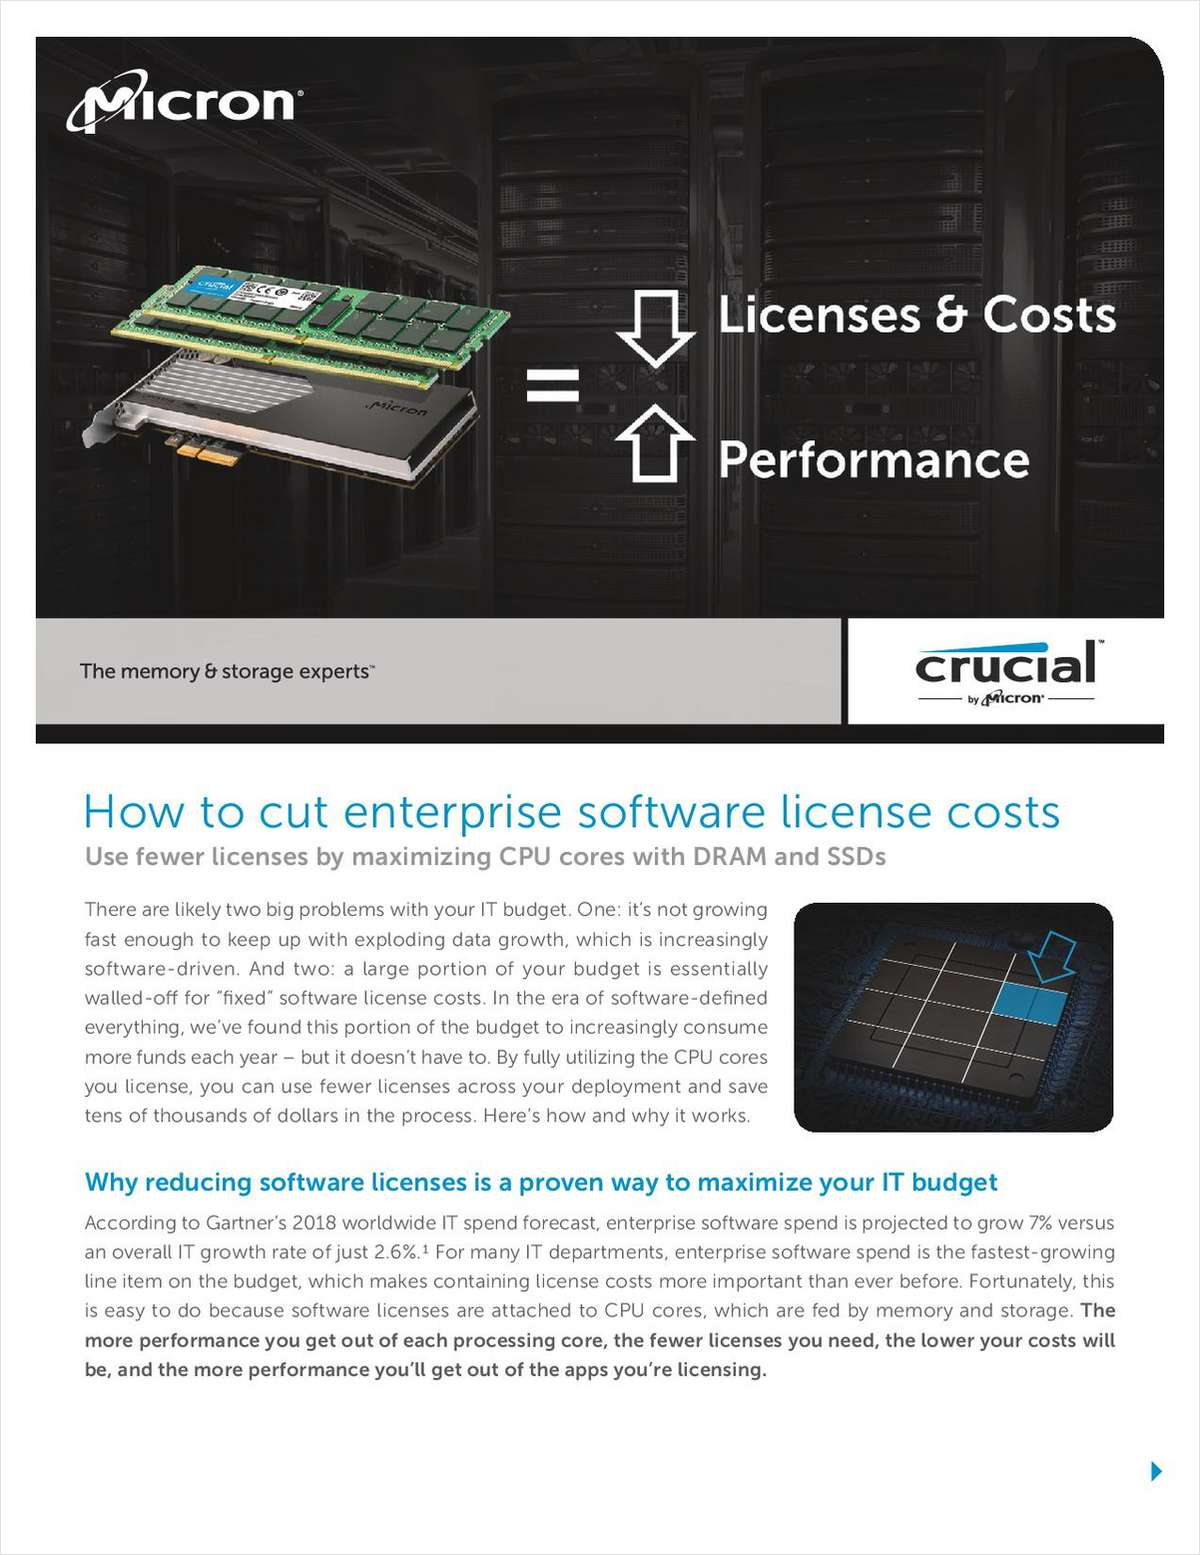 How to Cut Enterprise Software License Costs